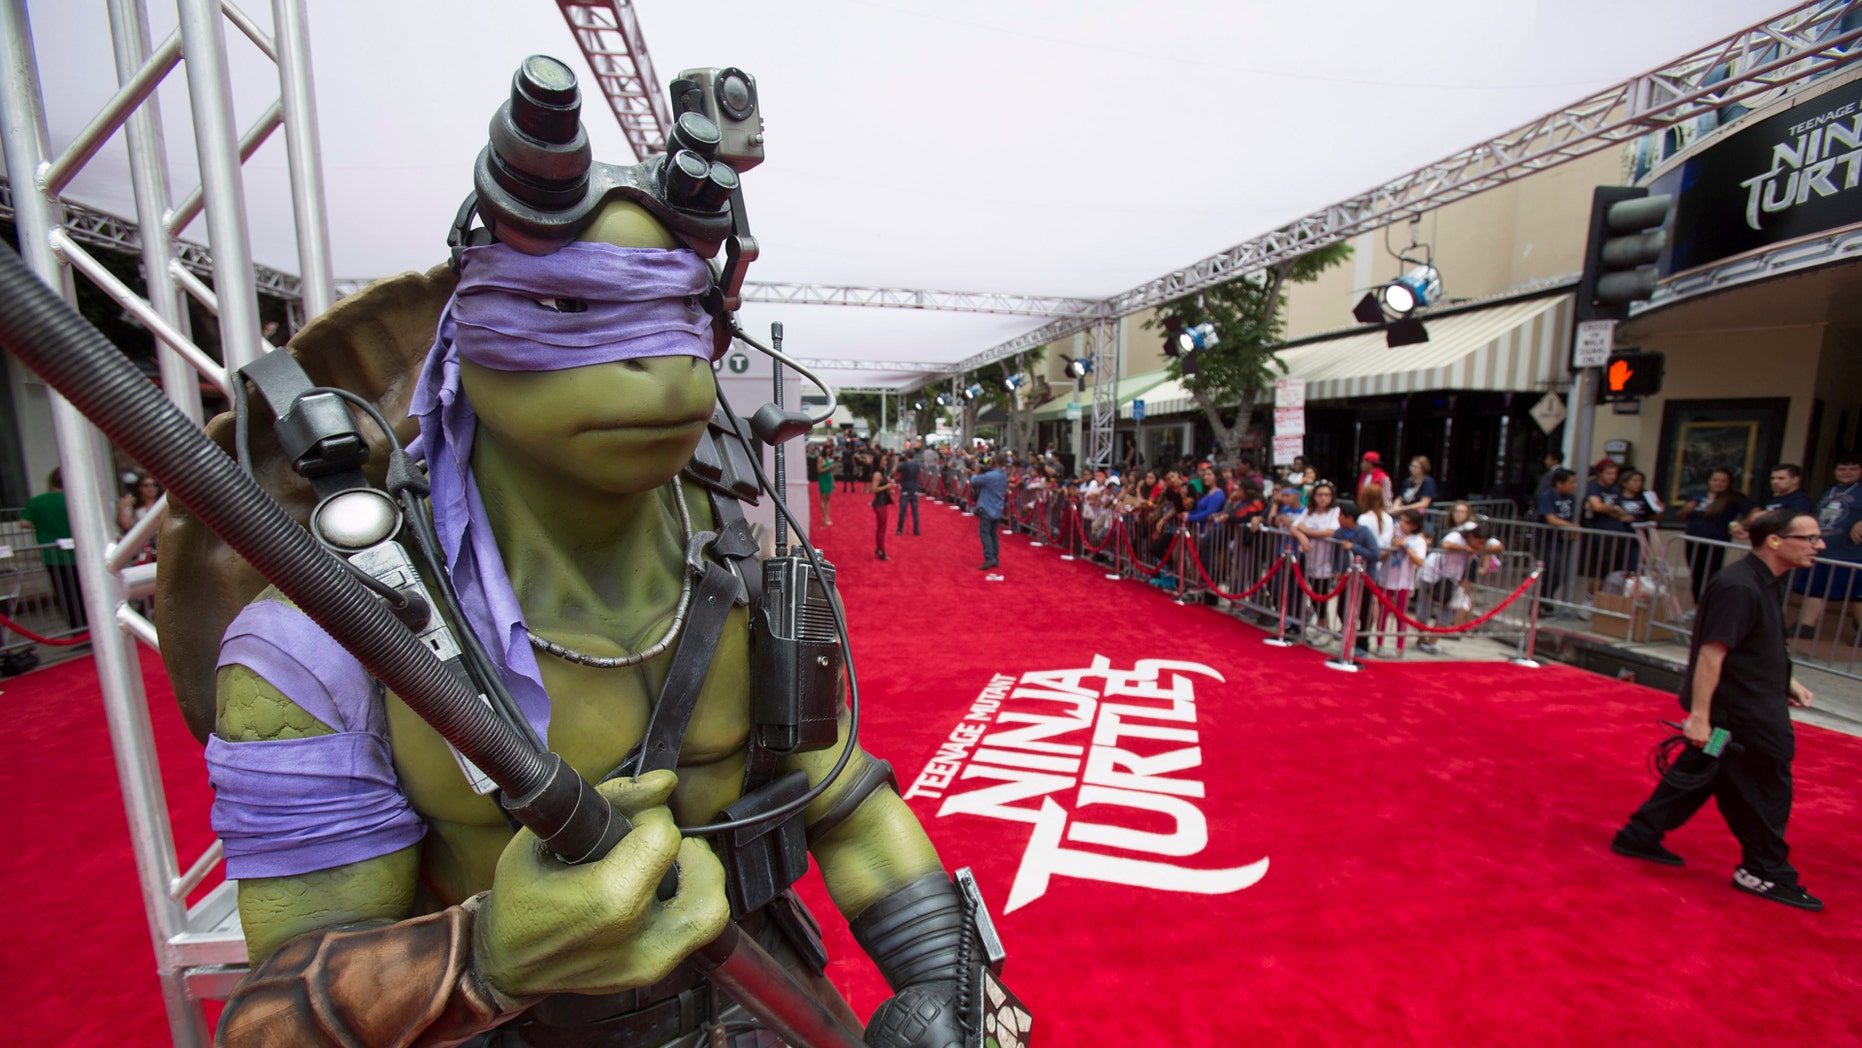 """File photo: A life-size model of the character """"Donatello"""" is pictured at the premiere of """"Teenage Mutant Ninja Turtles"""" in Los Angeles, California August 3, 2014.  (REUTERS/Mario Anzuoni)"""